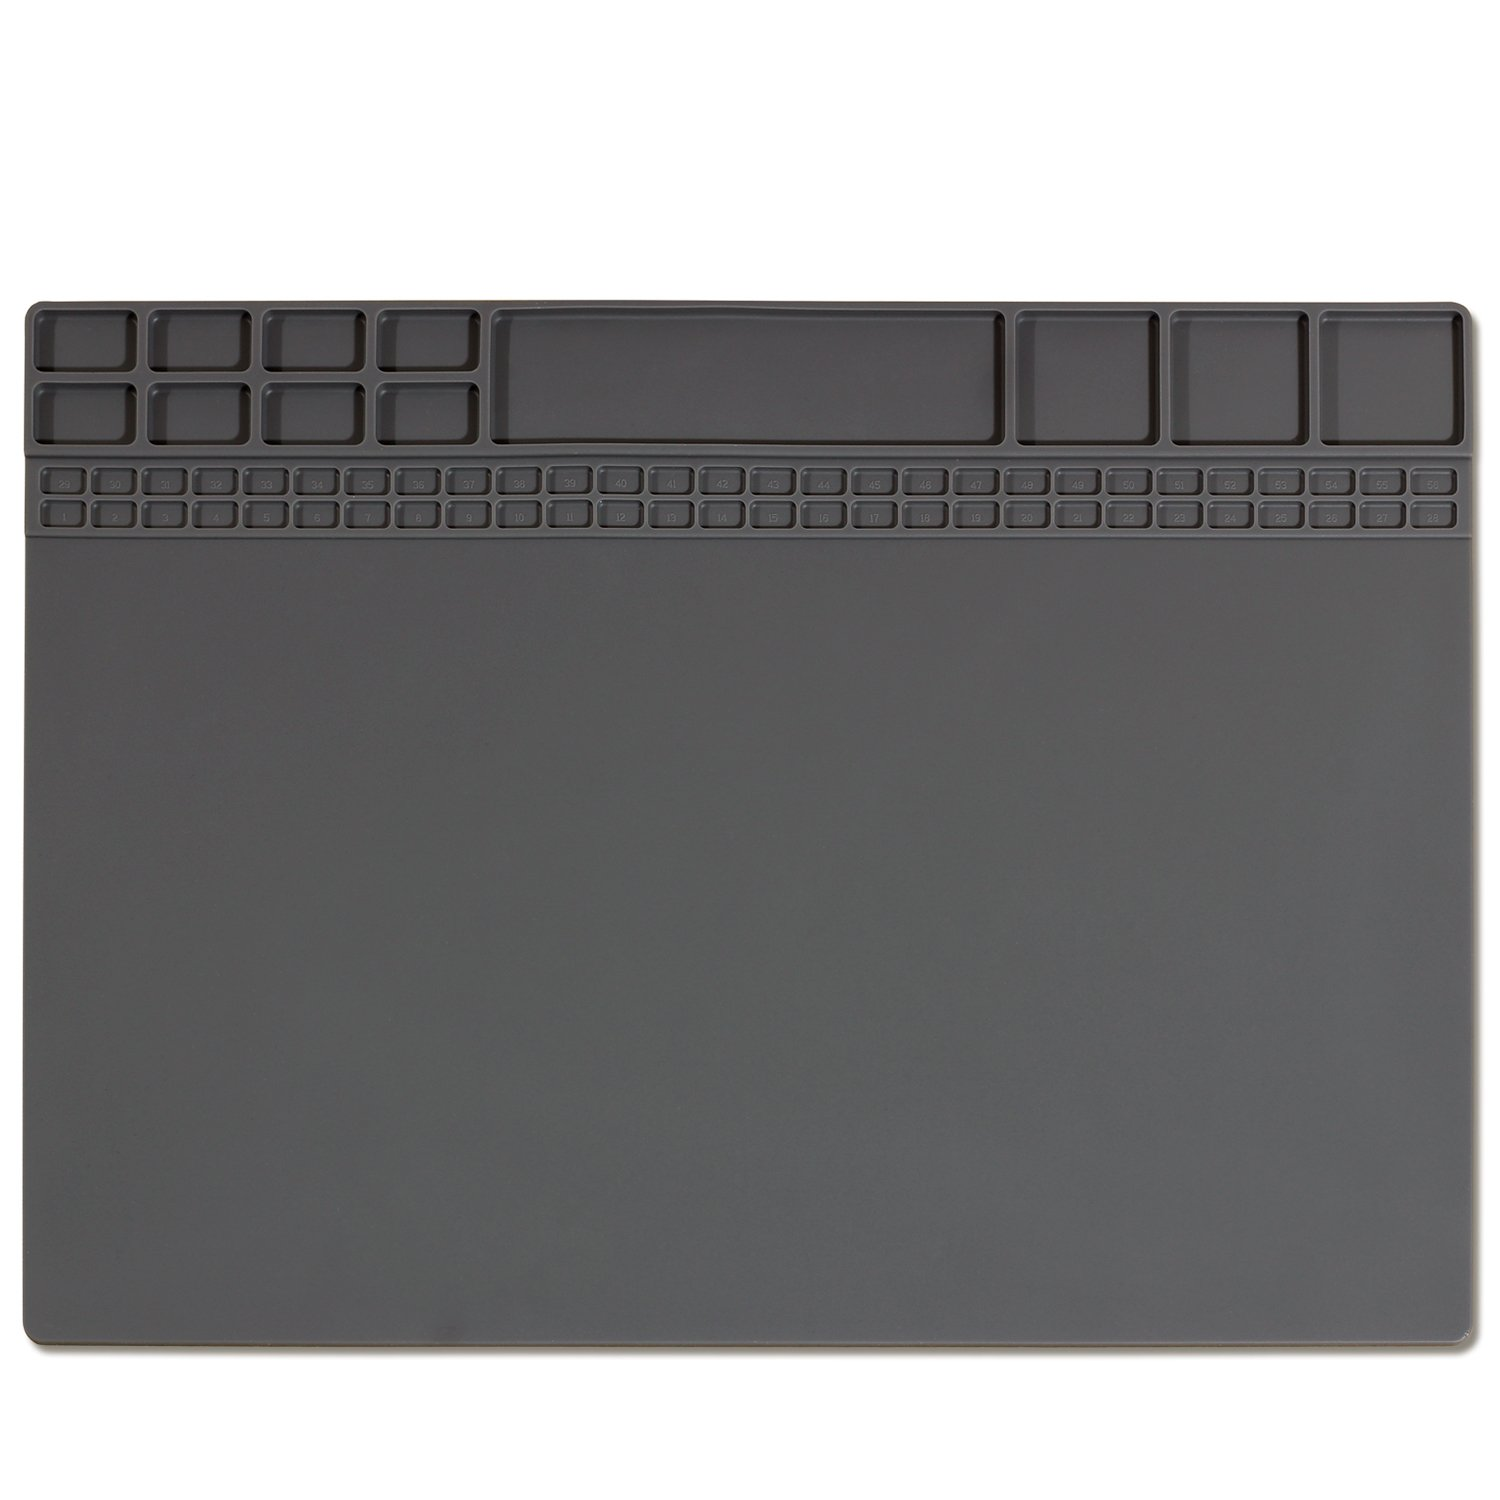 Ceatech Silicone Large Soldering Mat Electronics Repair for Laptop iPhone Circuit Board Solder Mat Heat Resistant 932°F for Heat Gun Soldering Iron 15.9'' x 12'' (Grey)